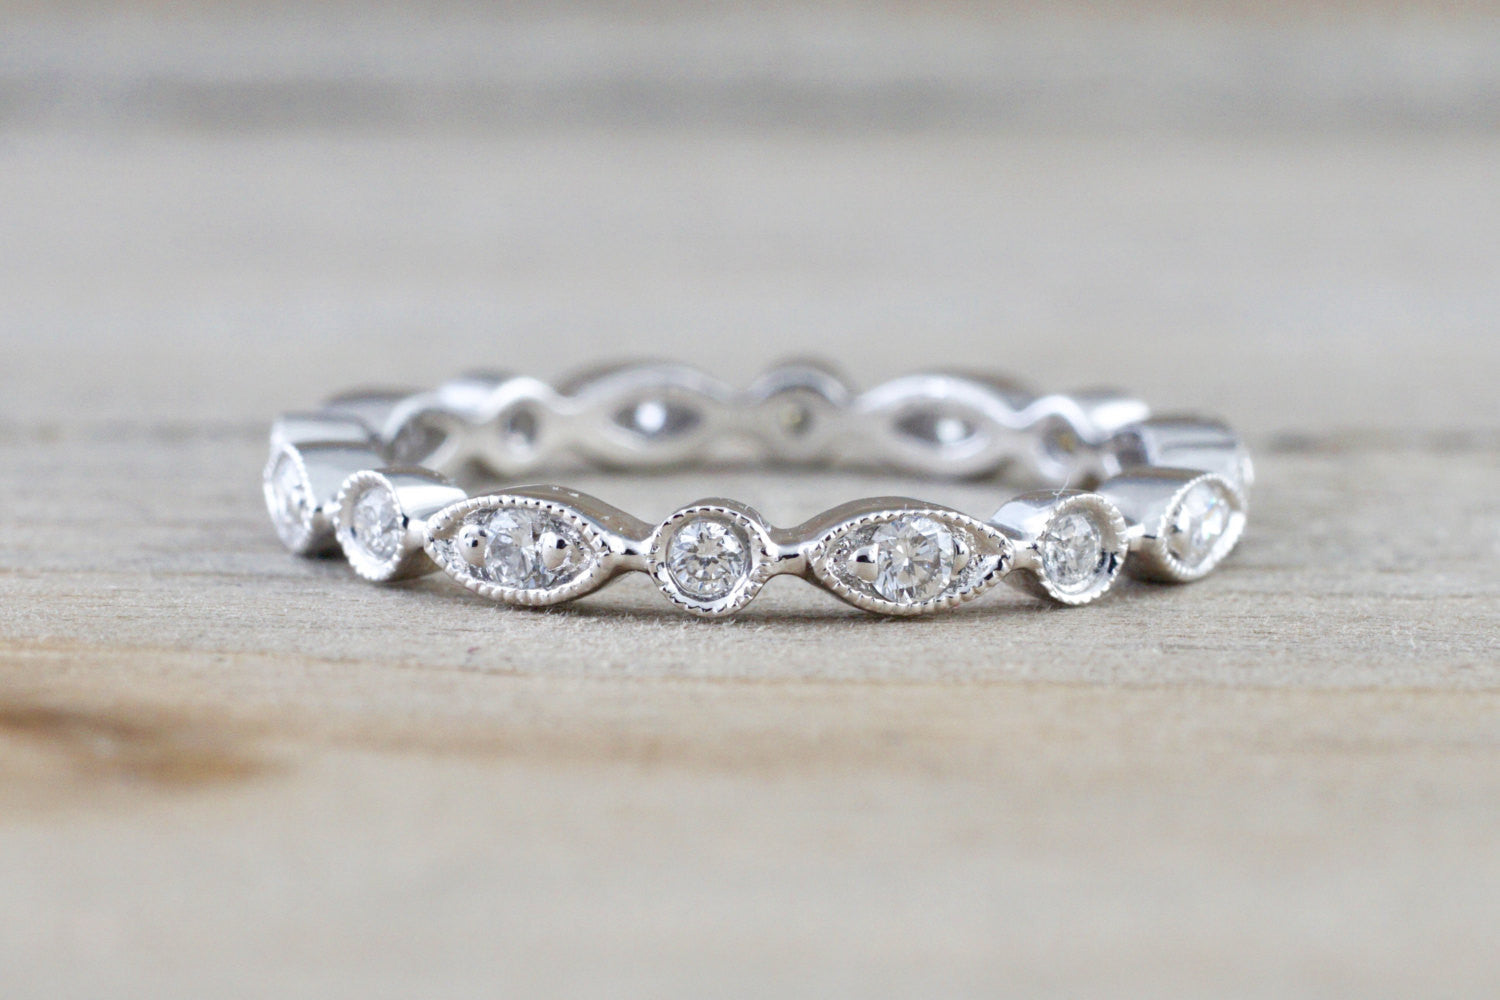 Eternity 14k White Gold Diamond Vintage Milgrain Ring Filigree Dainty Band Stacking